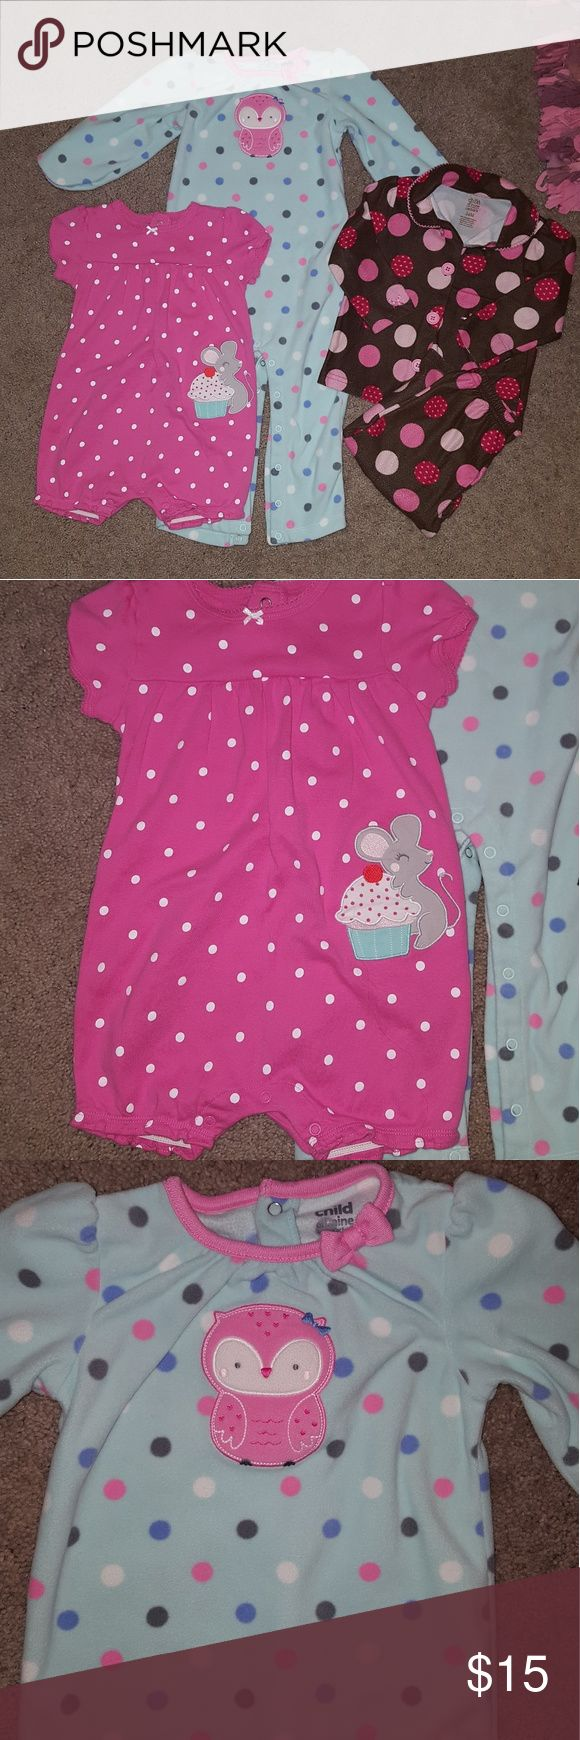 Carter's bundle Child of Mine (Carter's) Bundle   Pink polka dot romper w/mouse NWOT owl polka dot one piece NWOT brown w/pink polka dots pj's RUN  Smoke and pet free home *bundle for discount * Carter's One Pieces